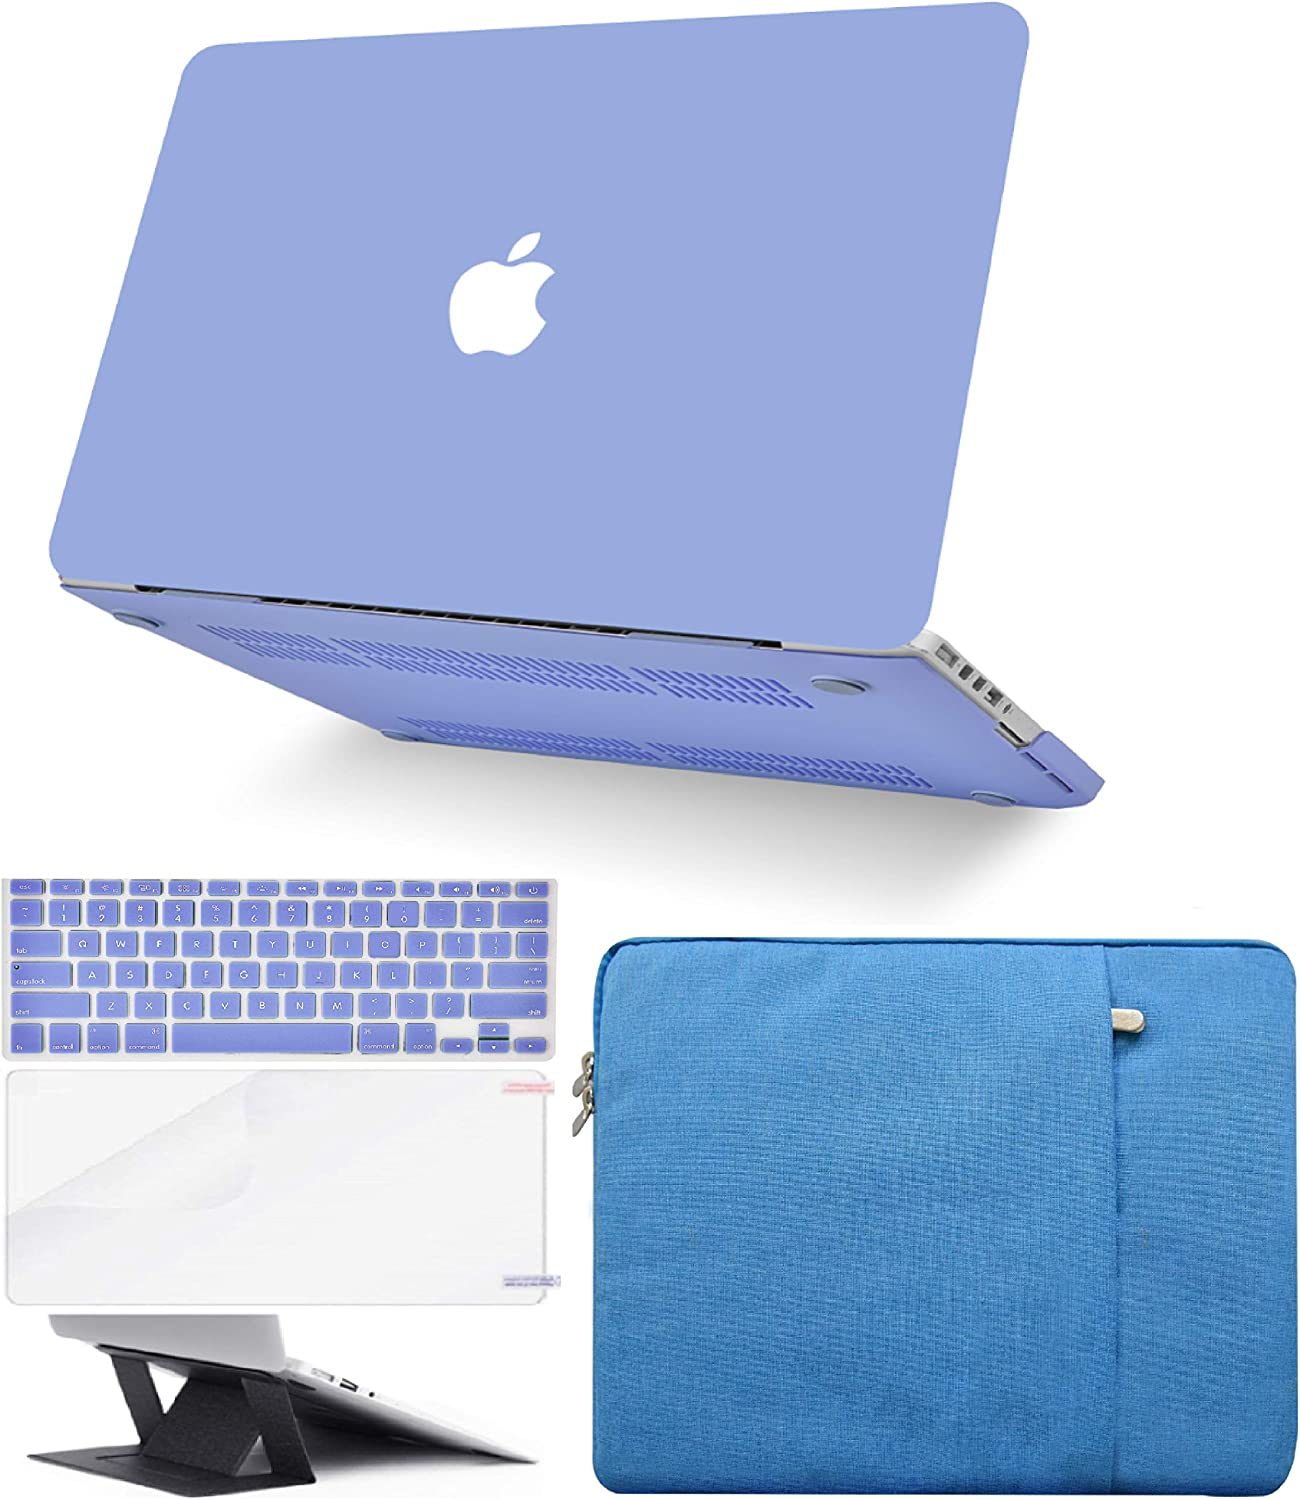 """KECC Laptop Case for MacBook Air 13"""" Retina (2020/2019/2018, Touch ID) w/Keyboard Cover + Sleeve + Screen Protector + Laptop Stand (5 in 1 Bundle) Plastic Hard Shell Case A1932 (Pale Blue)"""